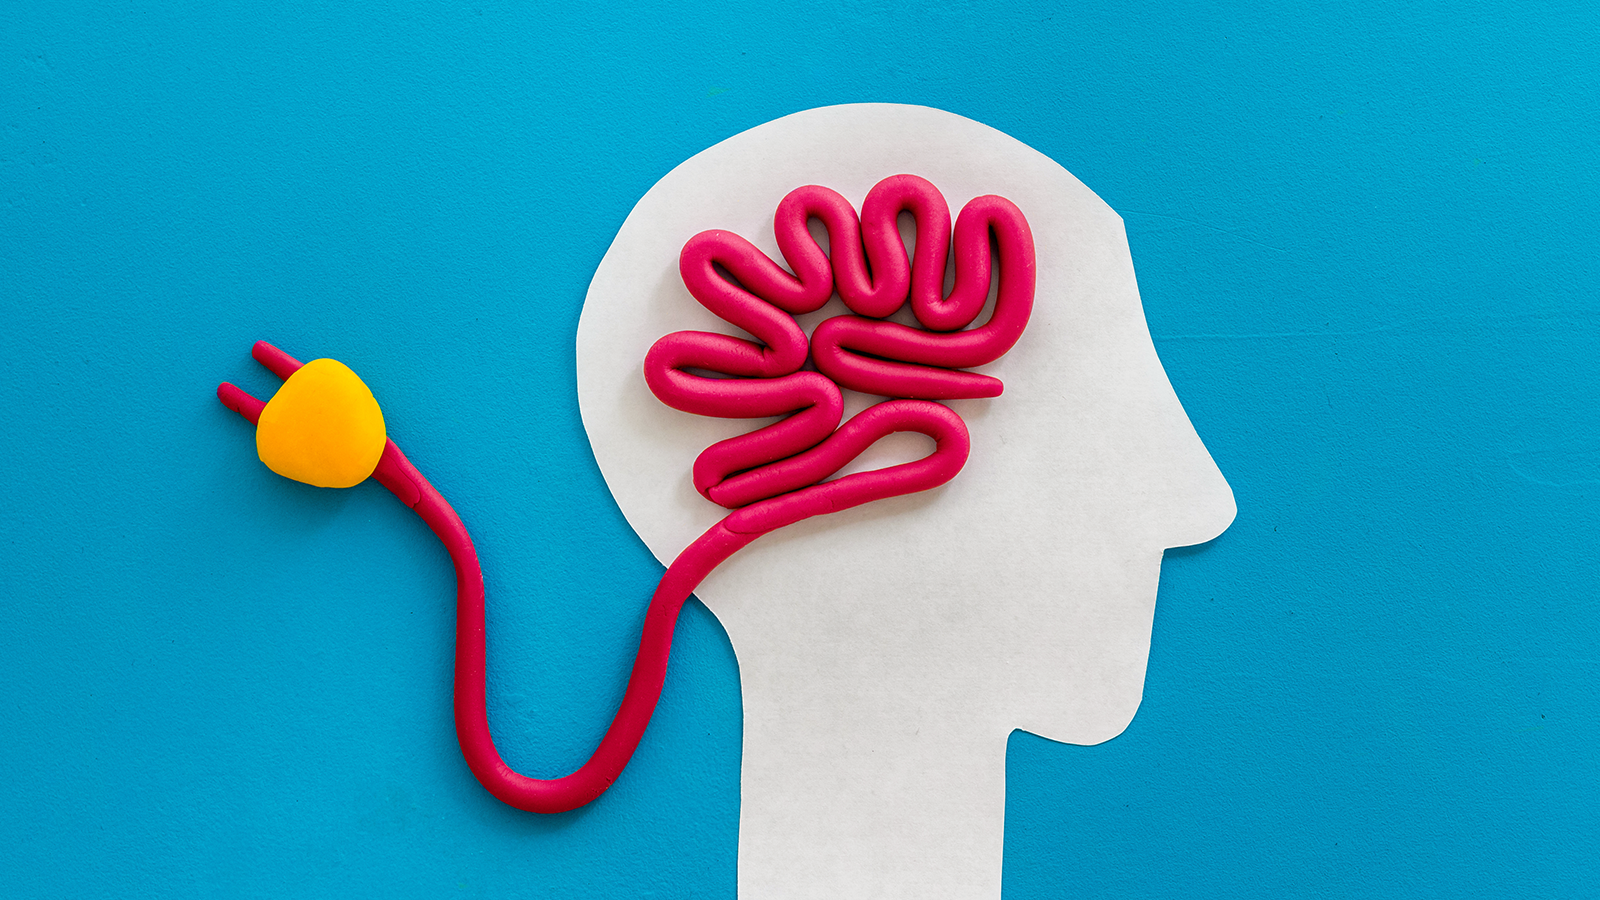 Understand How the Human Brain Works to Build Classroom Routines